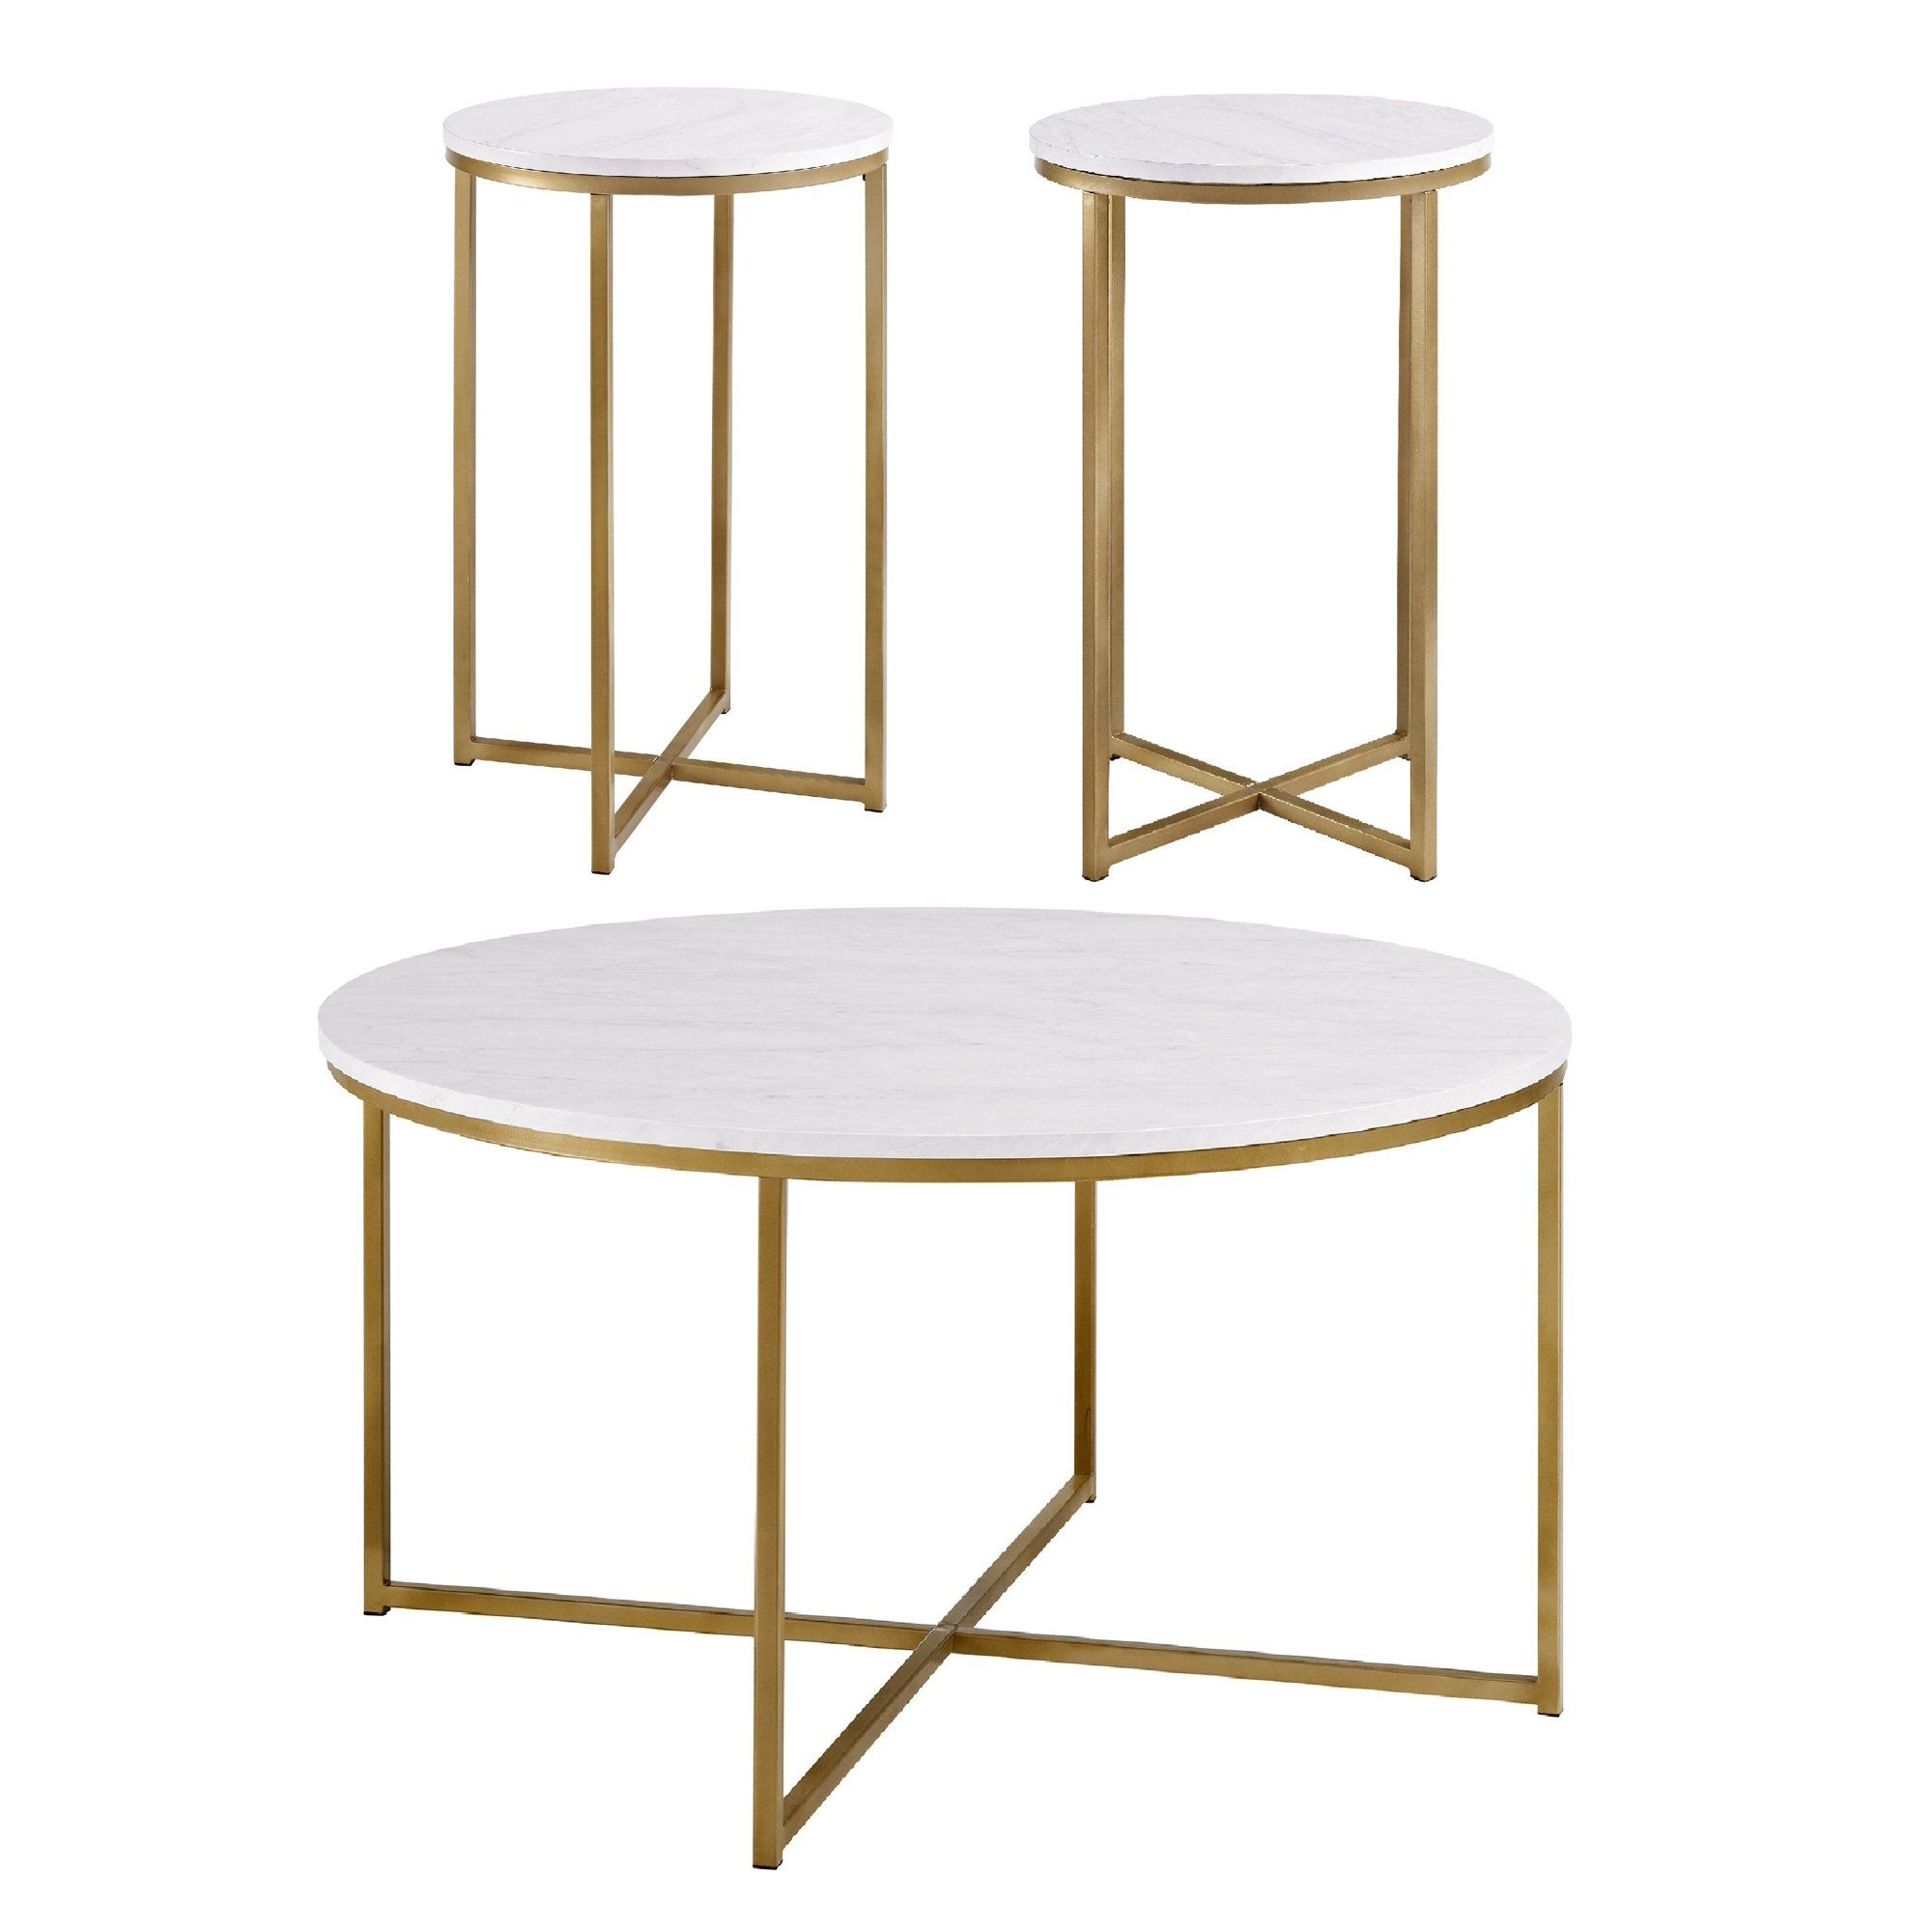 Tables Lachlan 32 Wide Espresso 3 Piece Round Nesting Tables Set Center Table Living Room Nesting Tables Living Room Coffee Table [ 1620 x 1620 Pixel ]